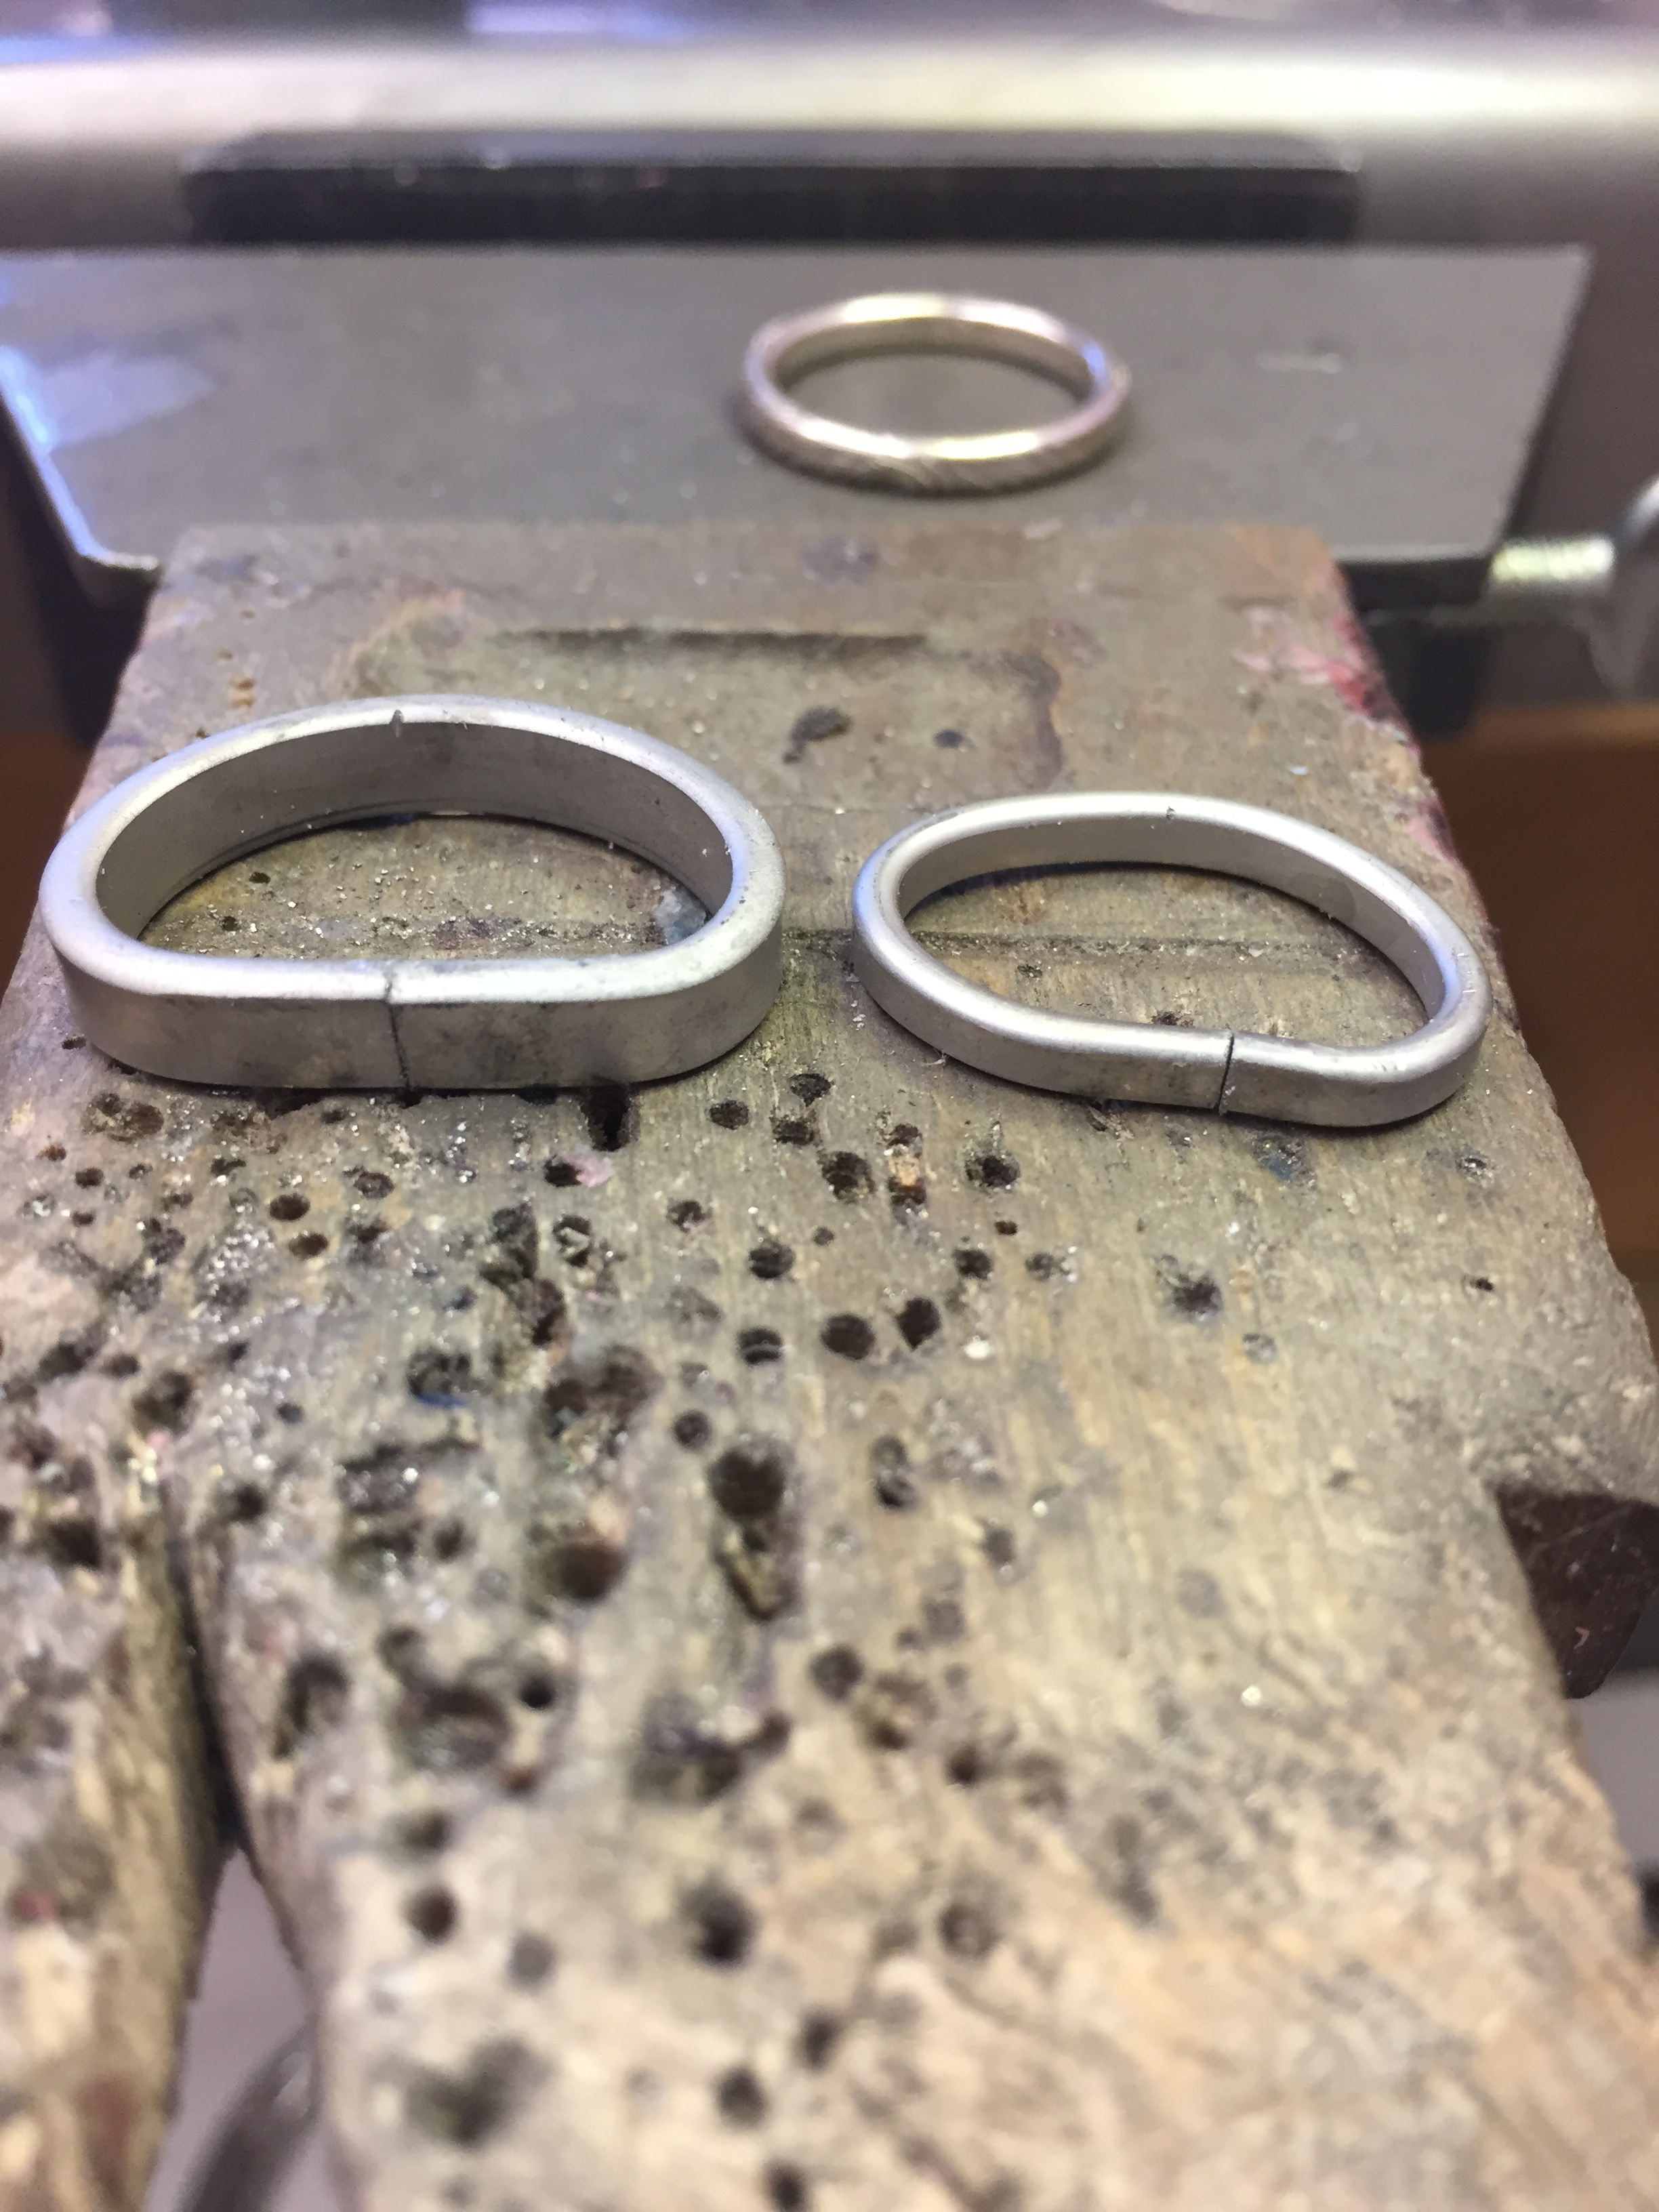 A labor of love - make your own wedding rings